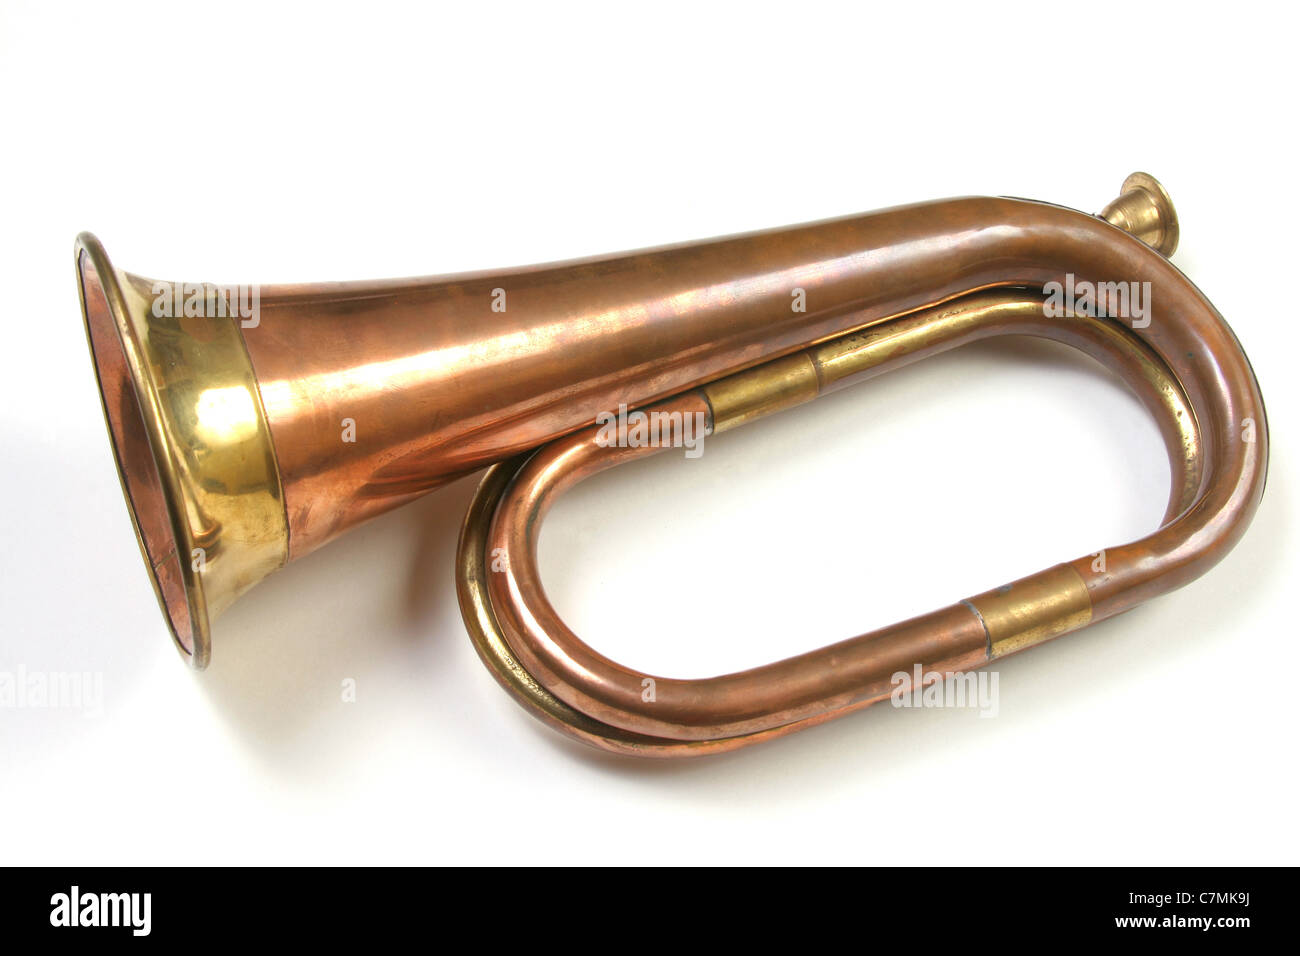 Cornet on a white background. - Stock Image